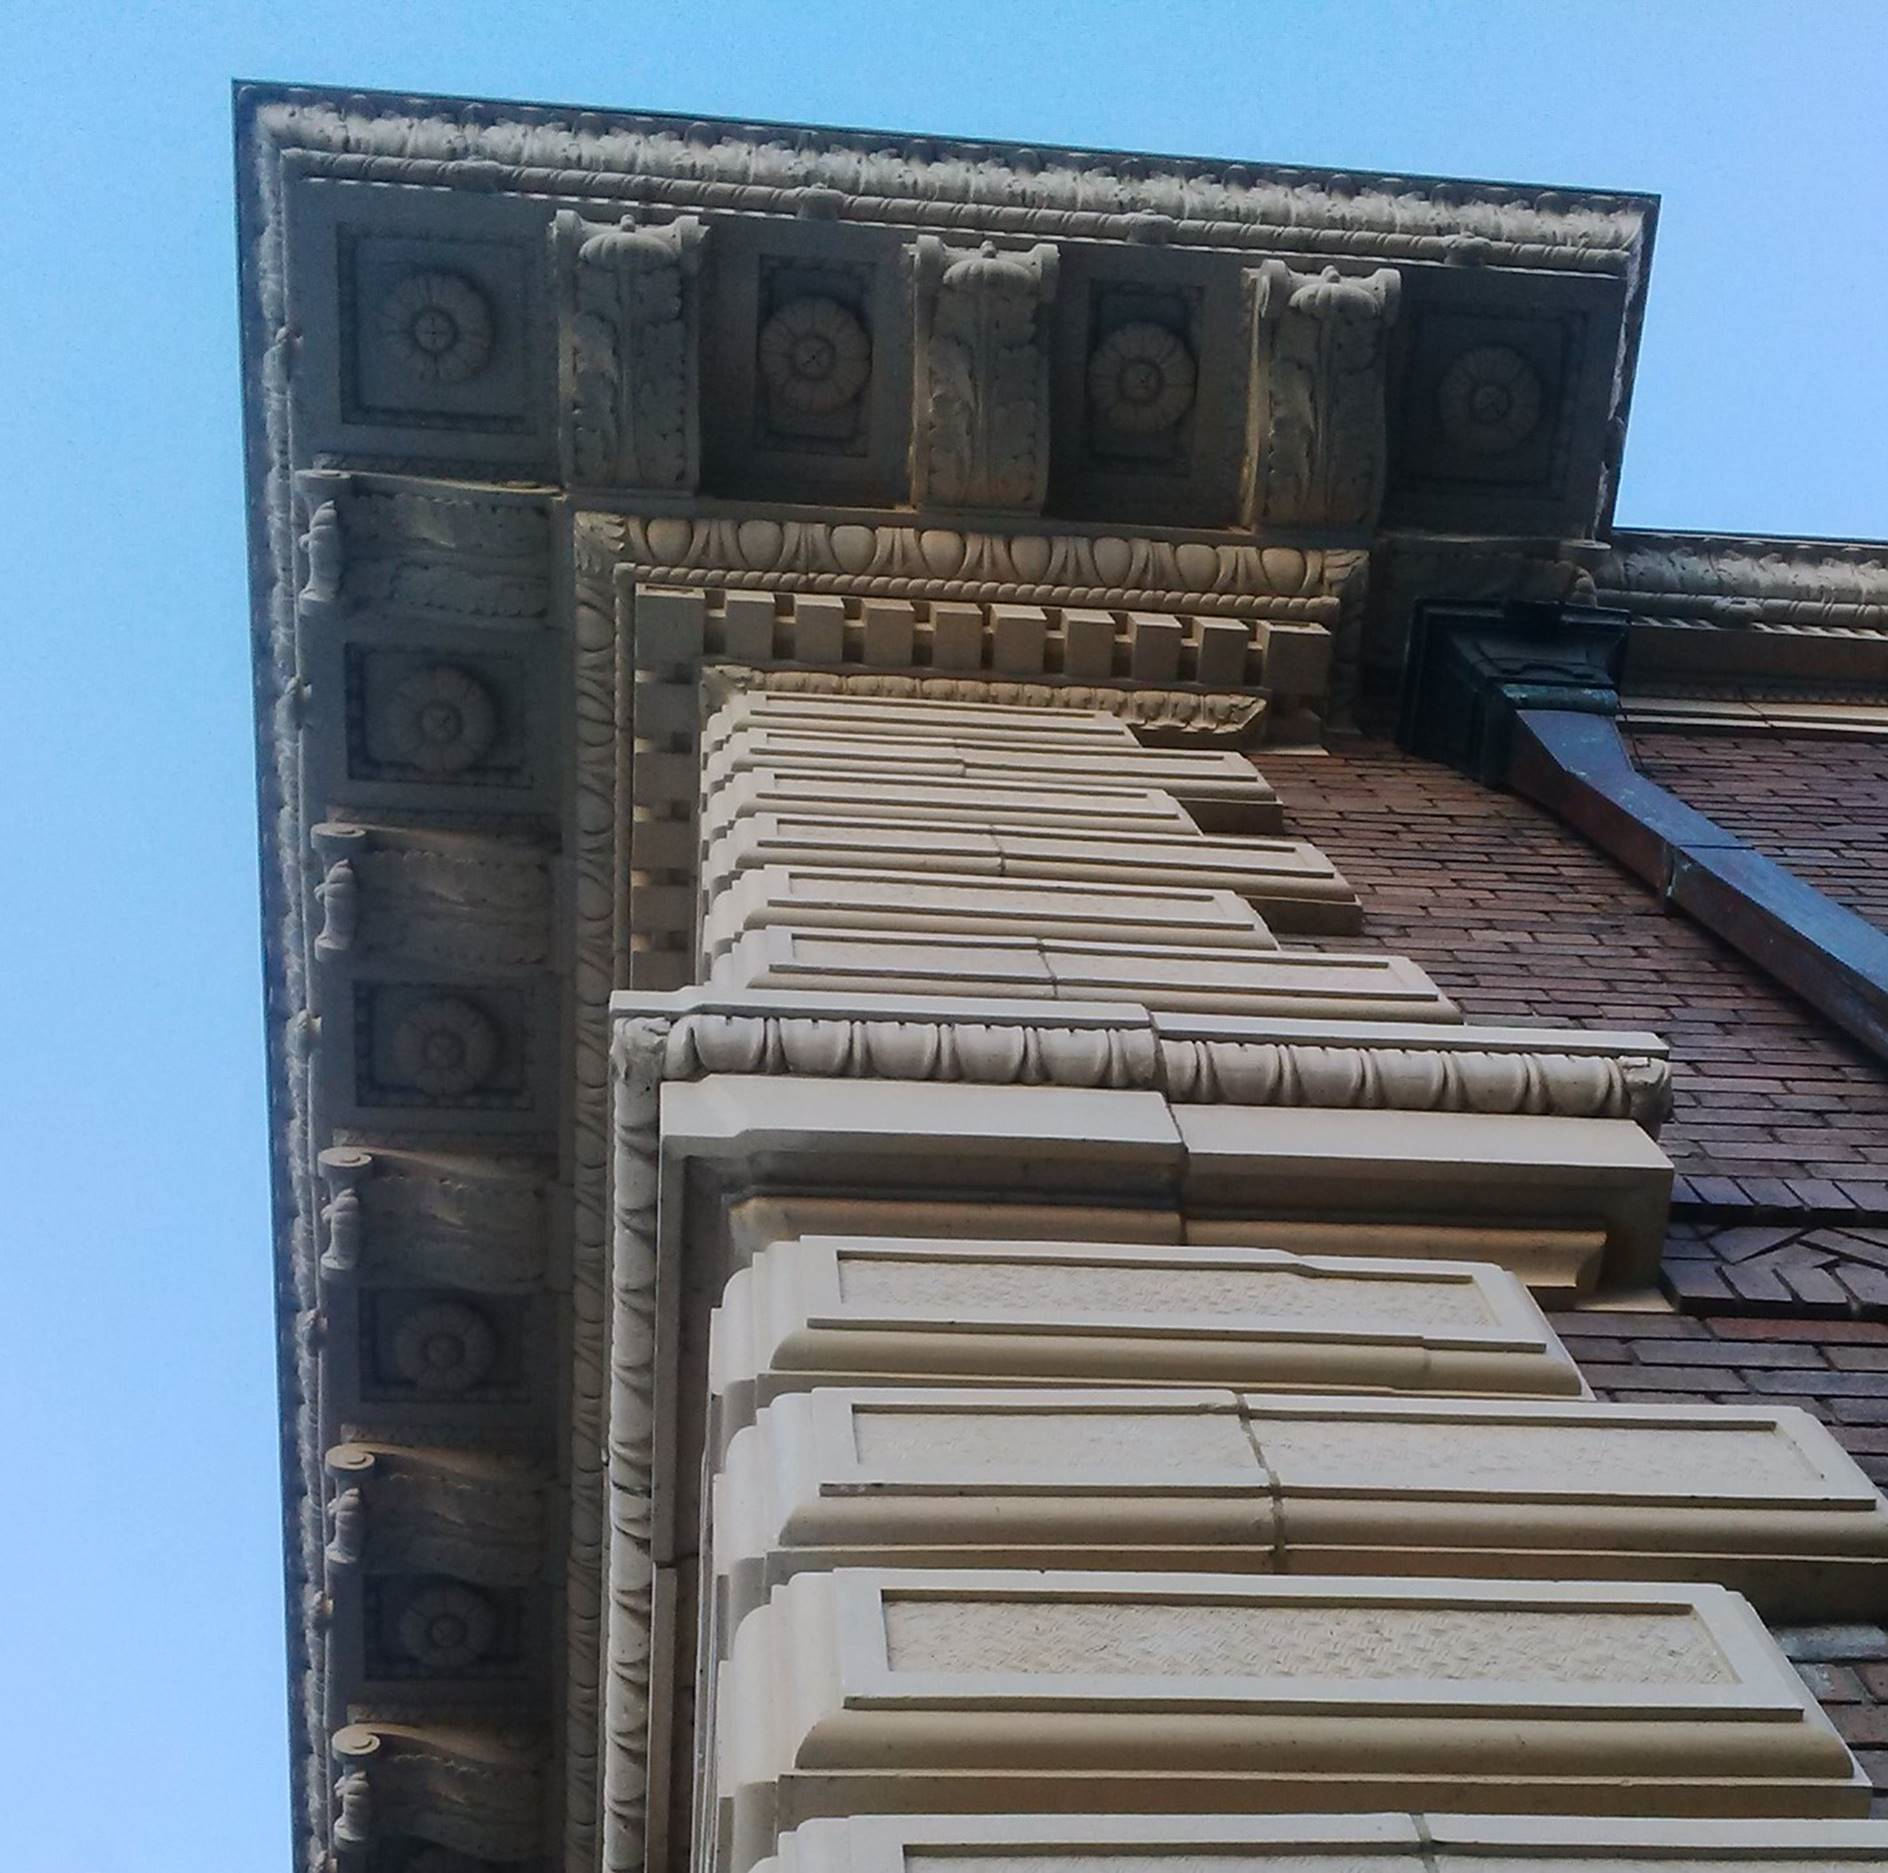 Among the work done was the careful dismantling of the building's terra cotta while cataloging the various elements so they could be carefully pinned back together, patched along cracks, sanded, stained and installed to original state. Decorative rosettes were installed in openings left void for nearly 100 years.